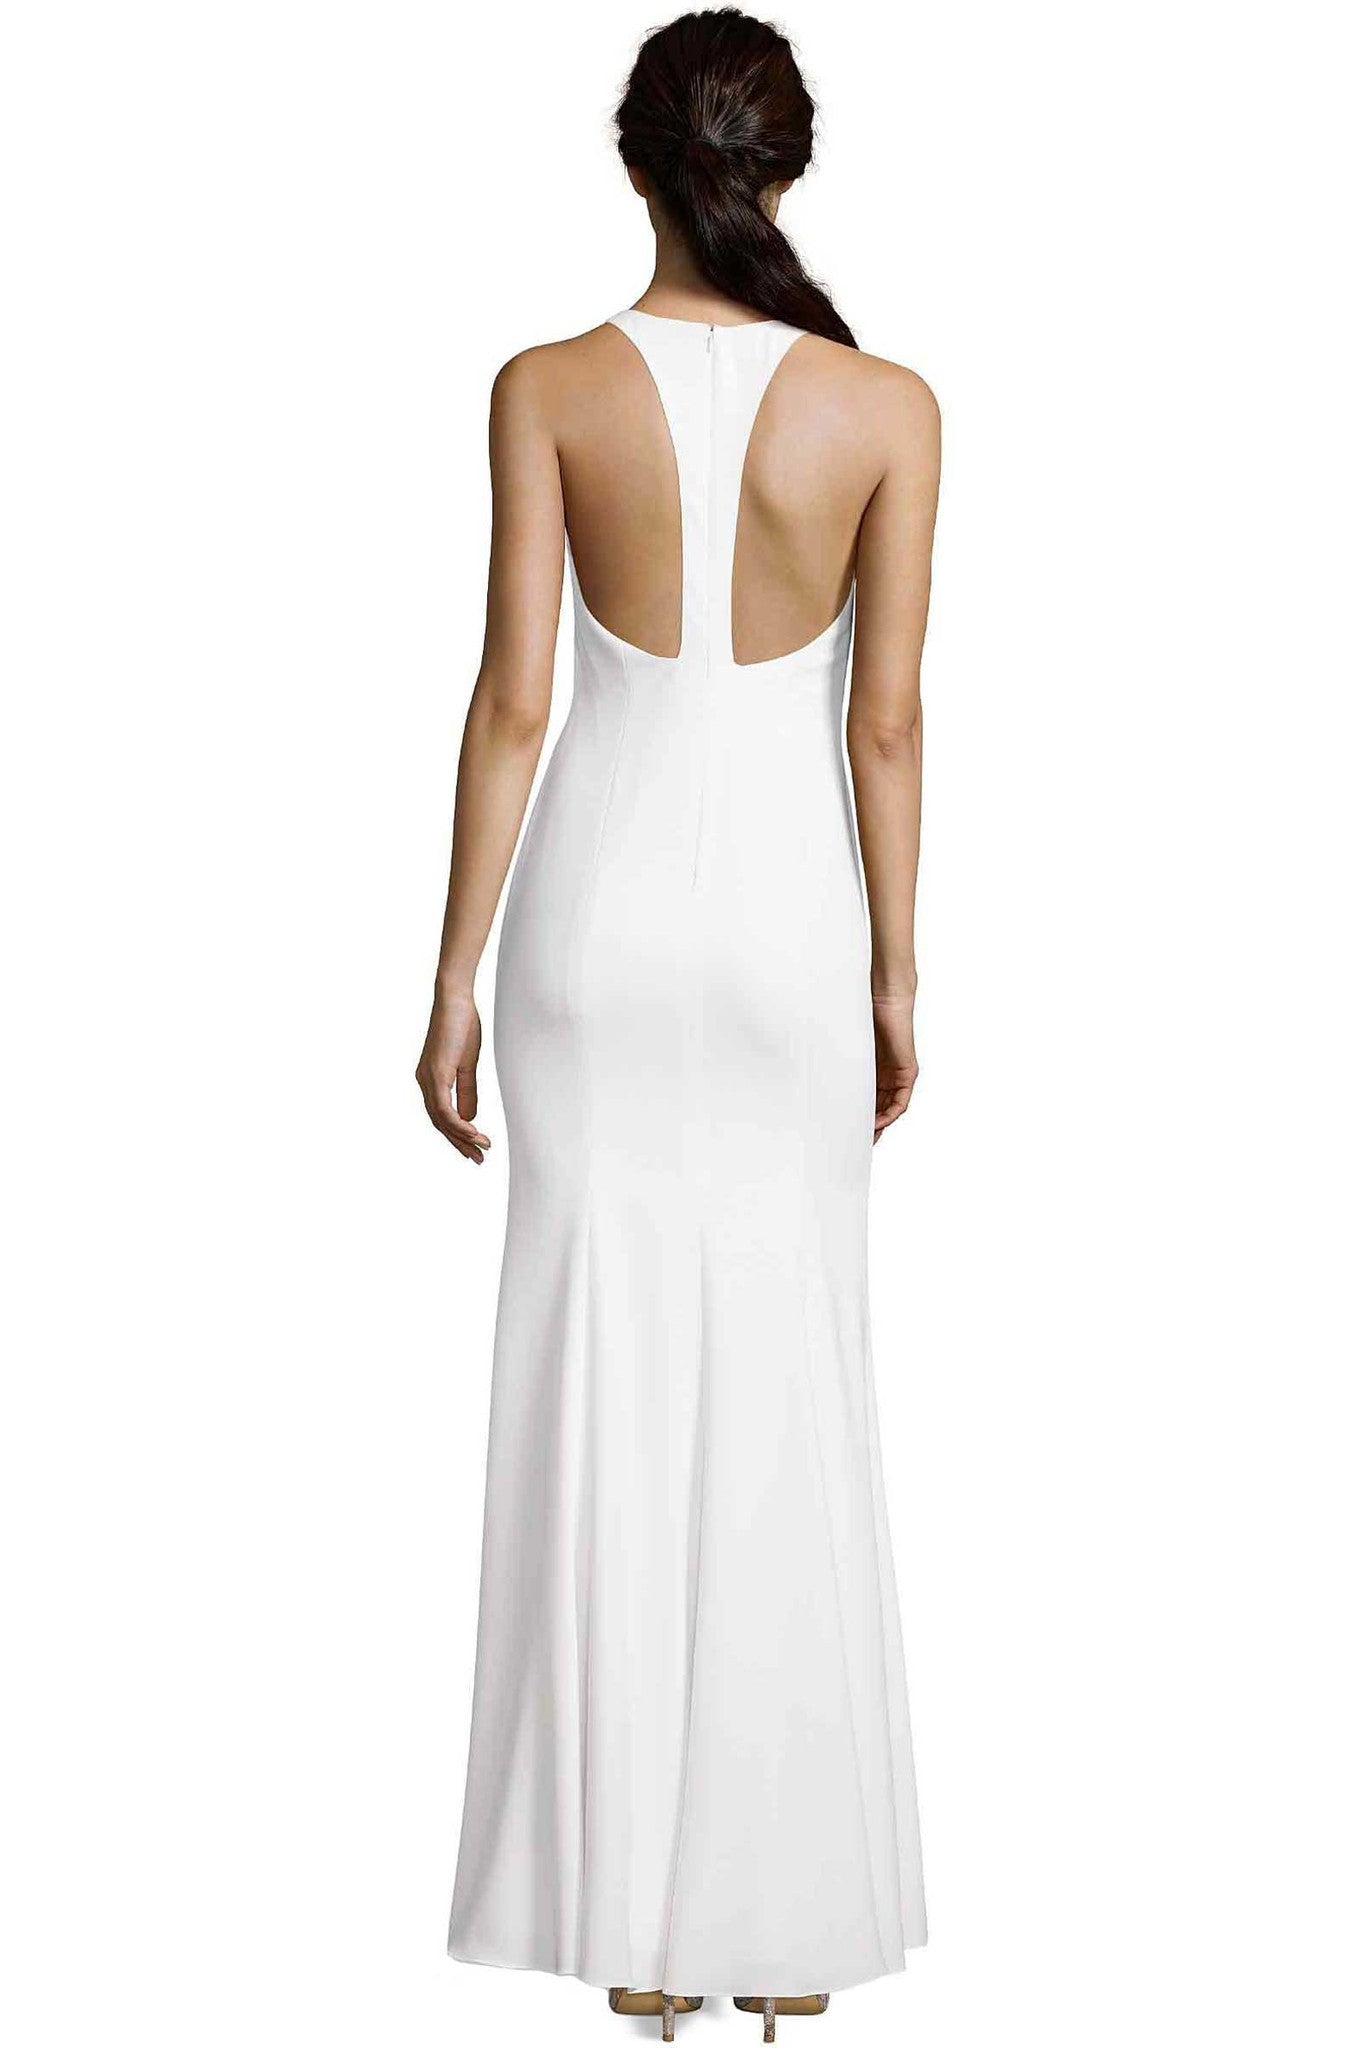 Jay Godfrey Deep V Neck Ivory Gown - Back View